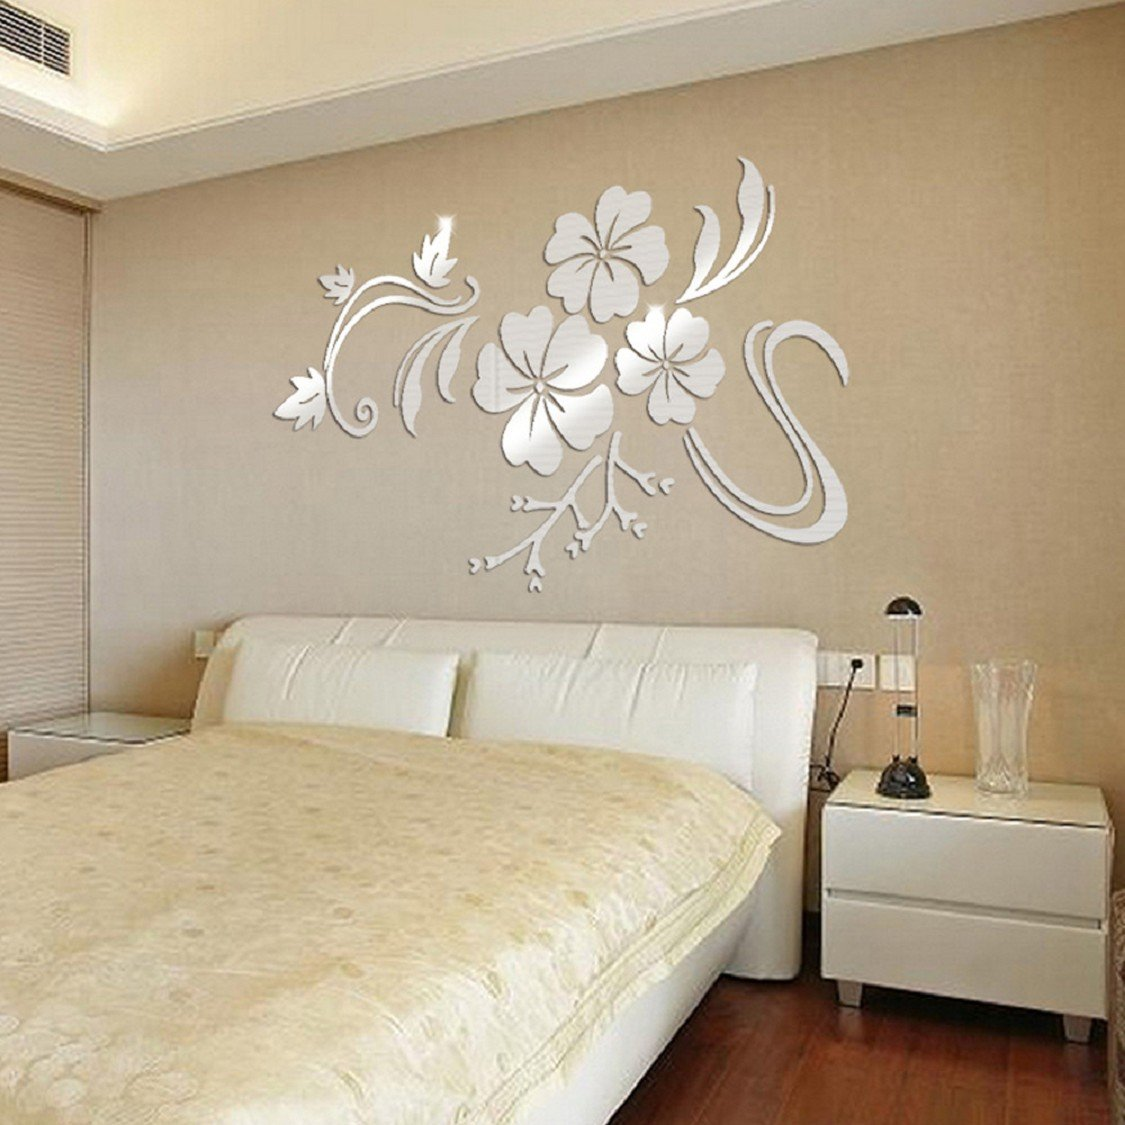 Amazing Sticker Decoration For Walls